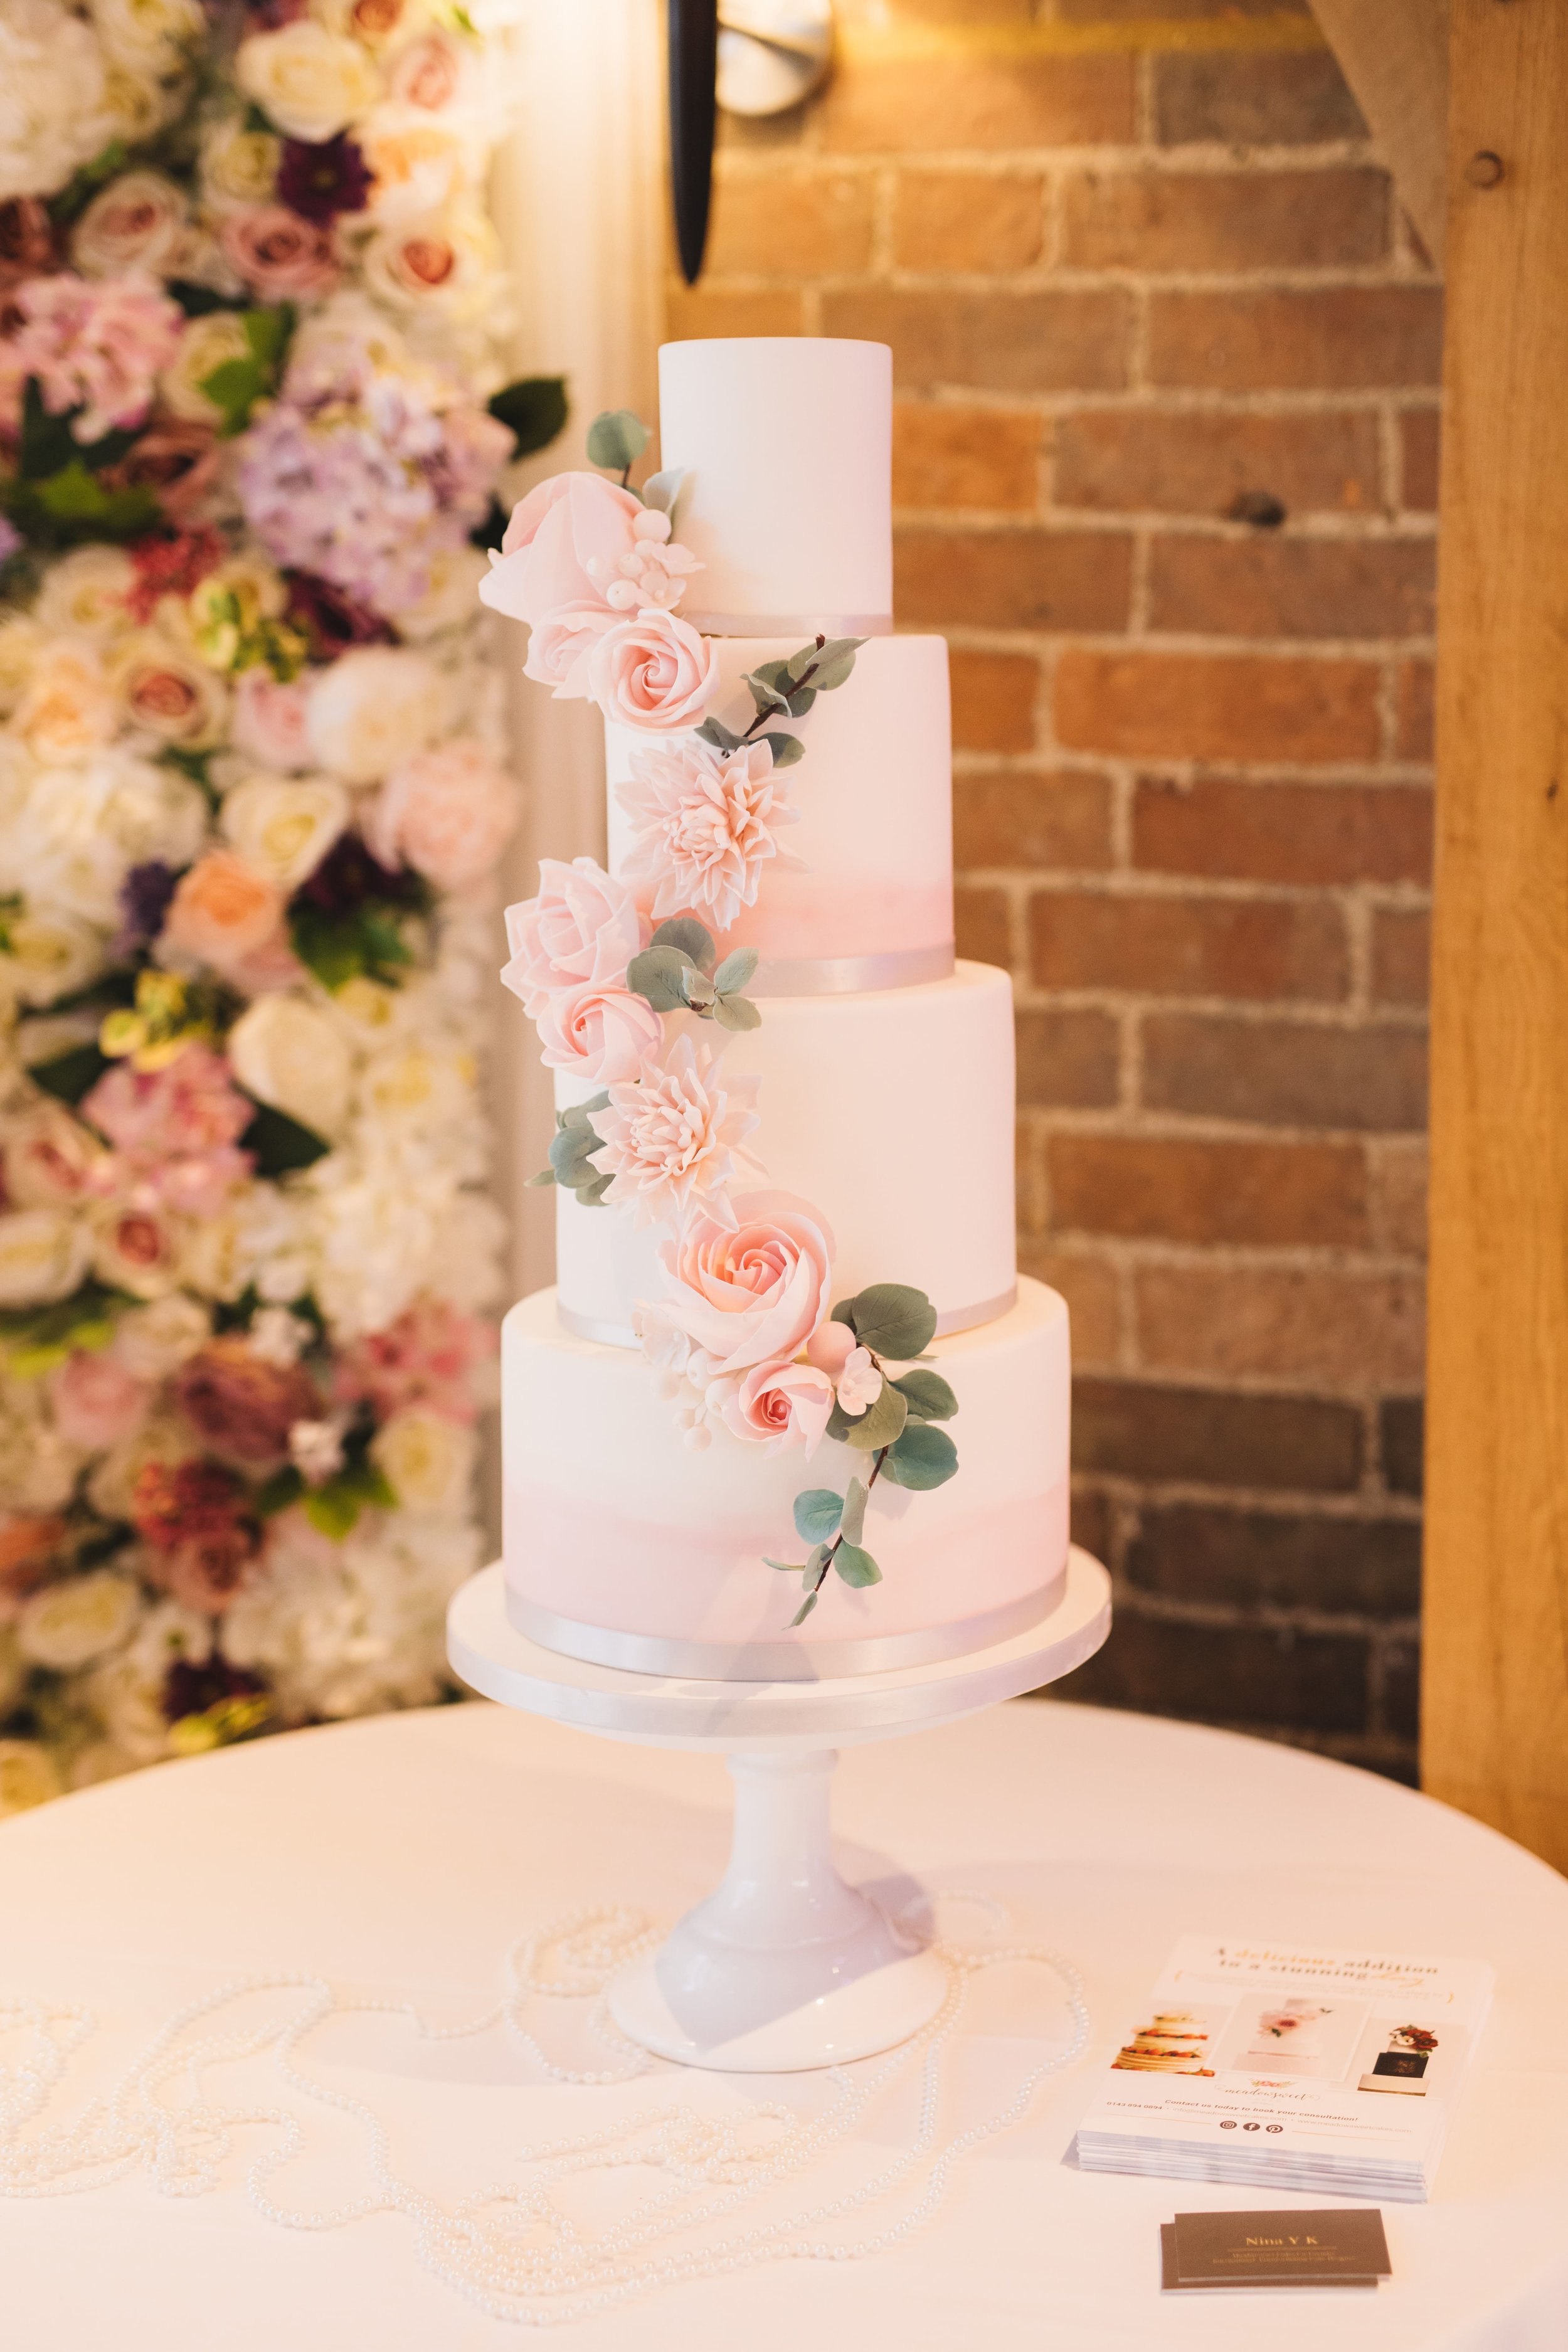 Floral wedding cake with blush watercolour effect and sage foliage by Meadowsweet Cakes, set up at Bassmead Manor Barns. Photography by Cat Lane Photo